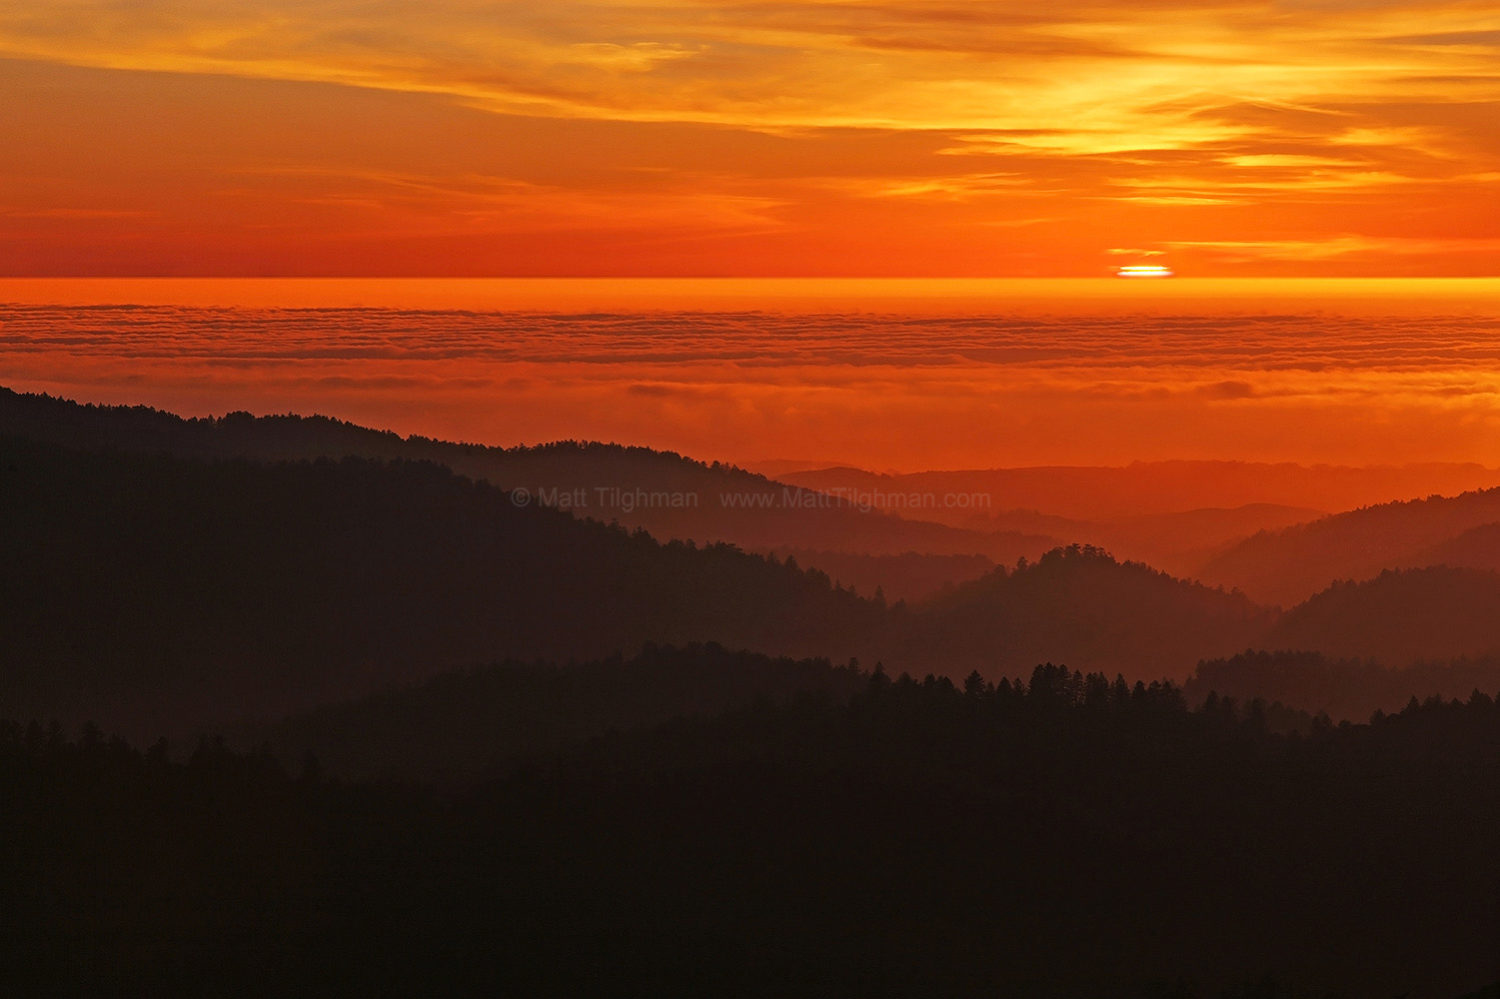 Fine art stock photograph from California's Santa Cruz Mountains. From atop Borel Hill, the sunset light seems to recede from the gentle coastal mountains.